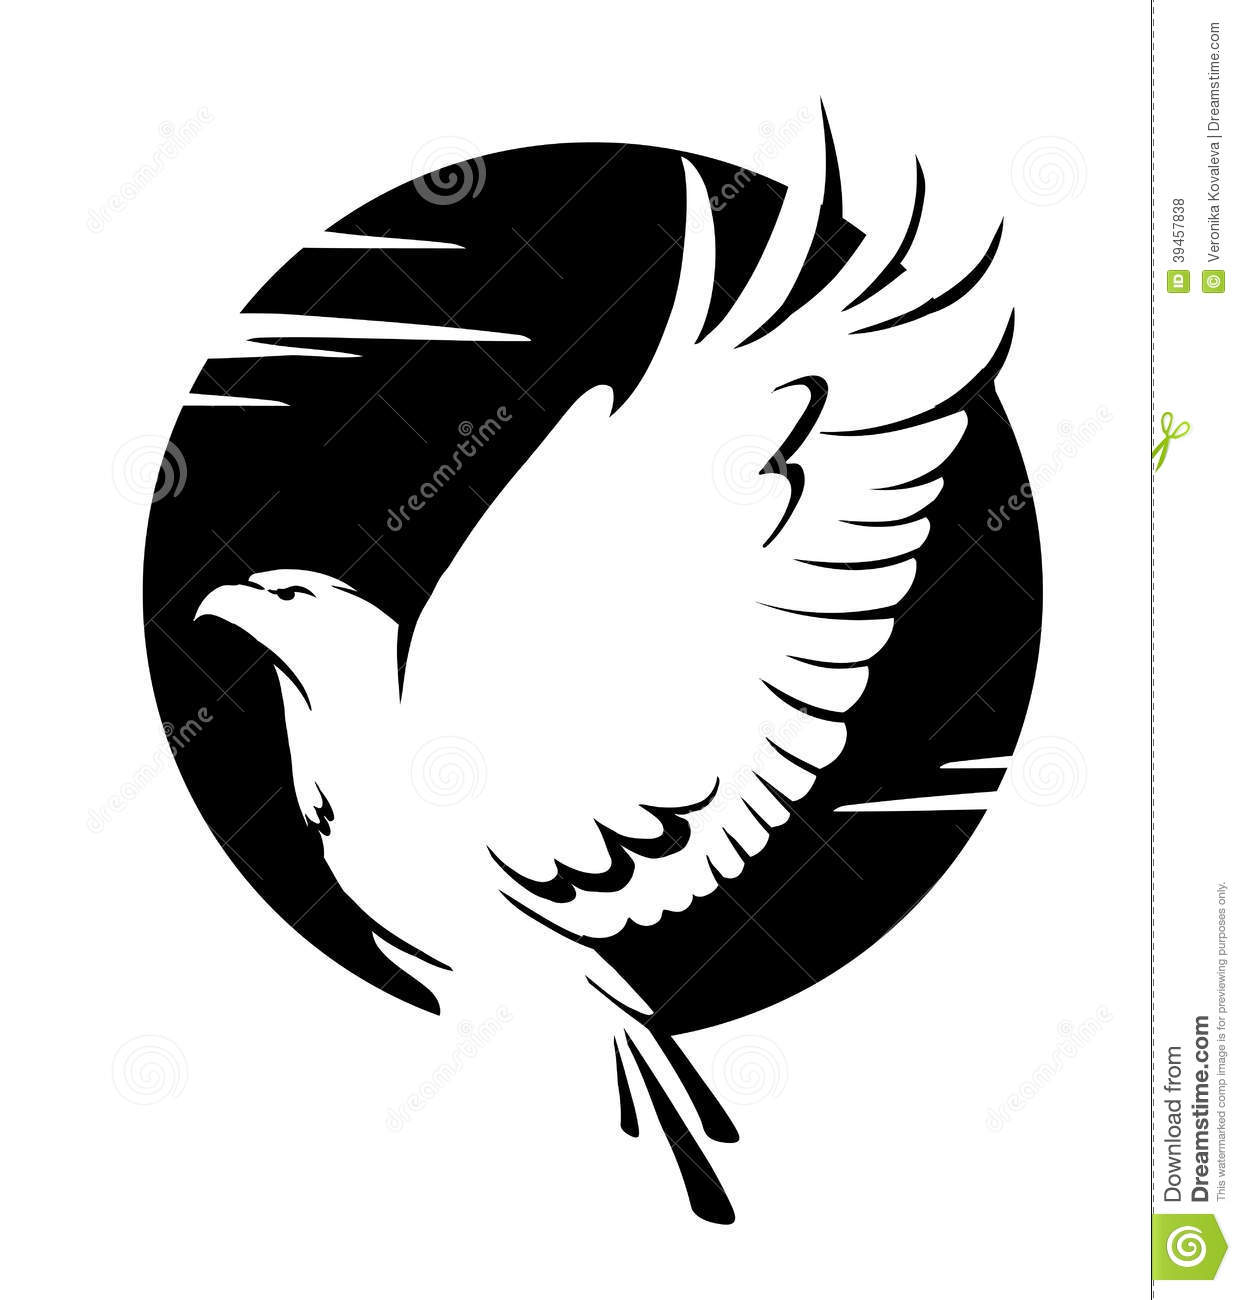 Black And White Eagle Stock Vector - Image: 39457838